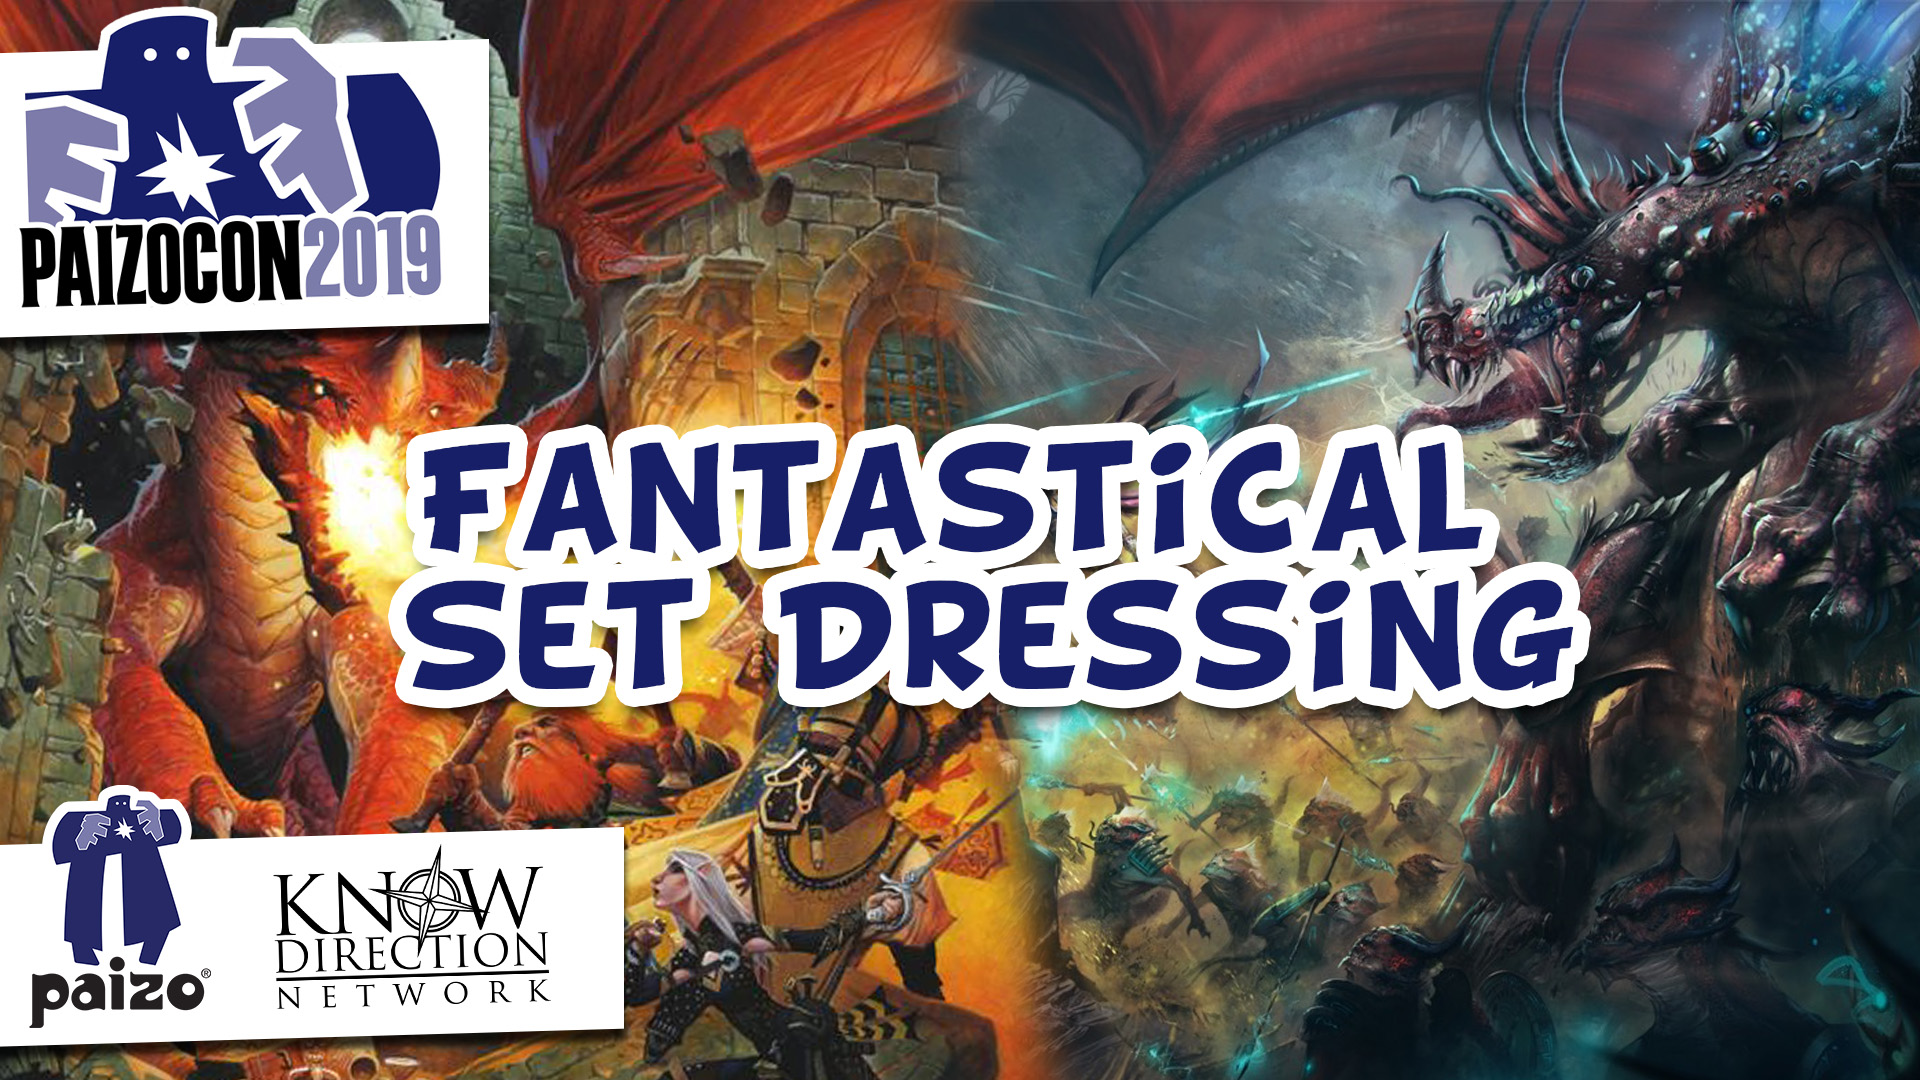 PaizoCon 2019 - Fantastical Set Dressing